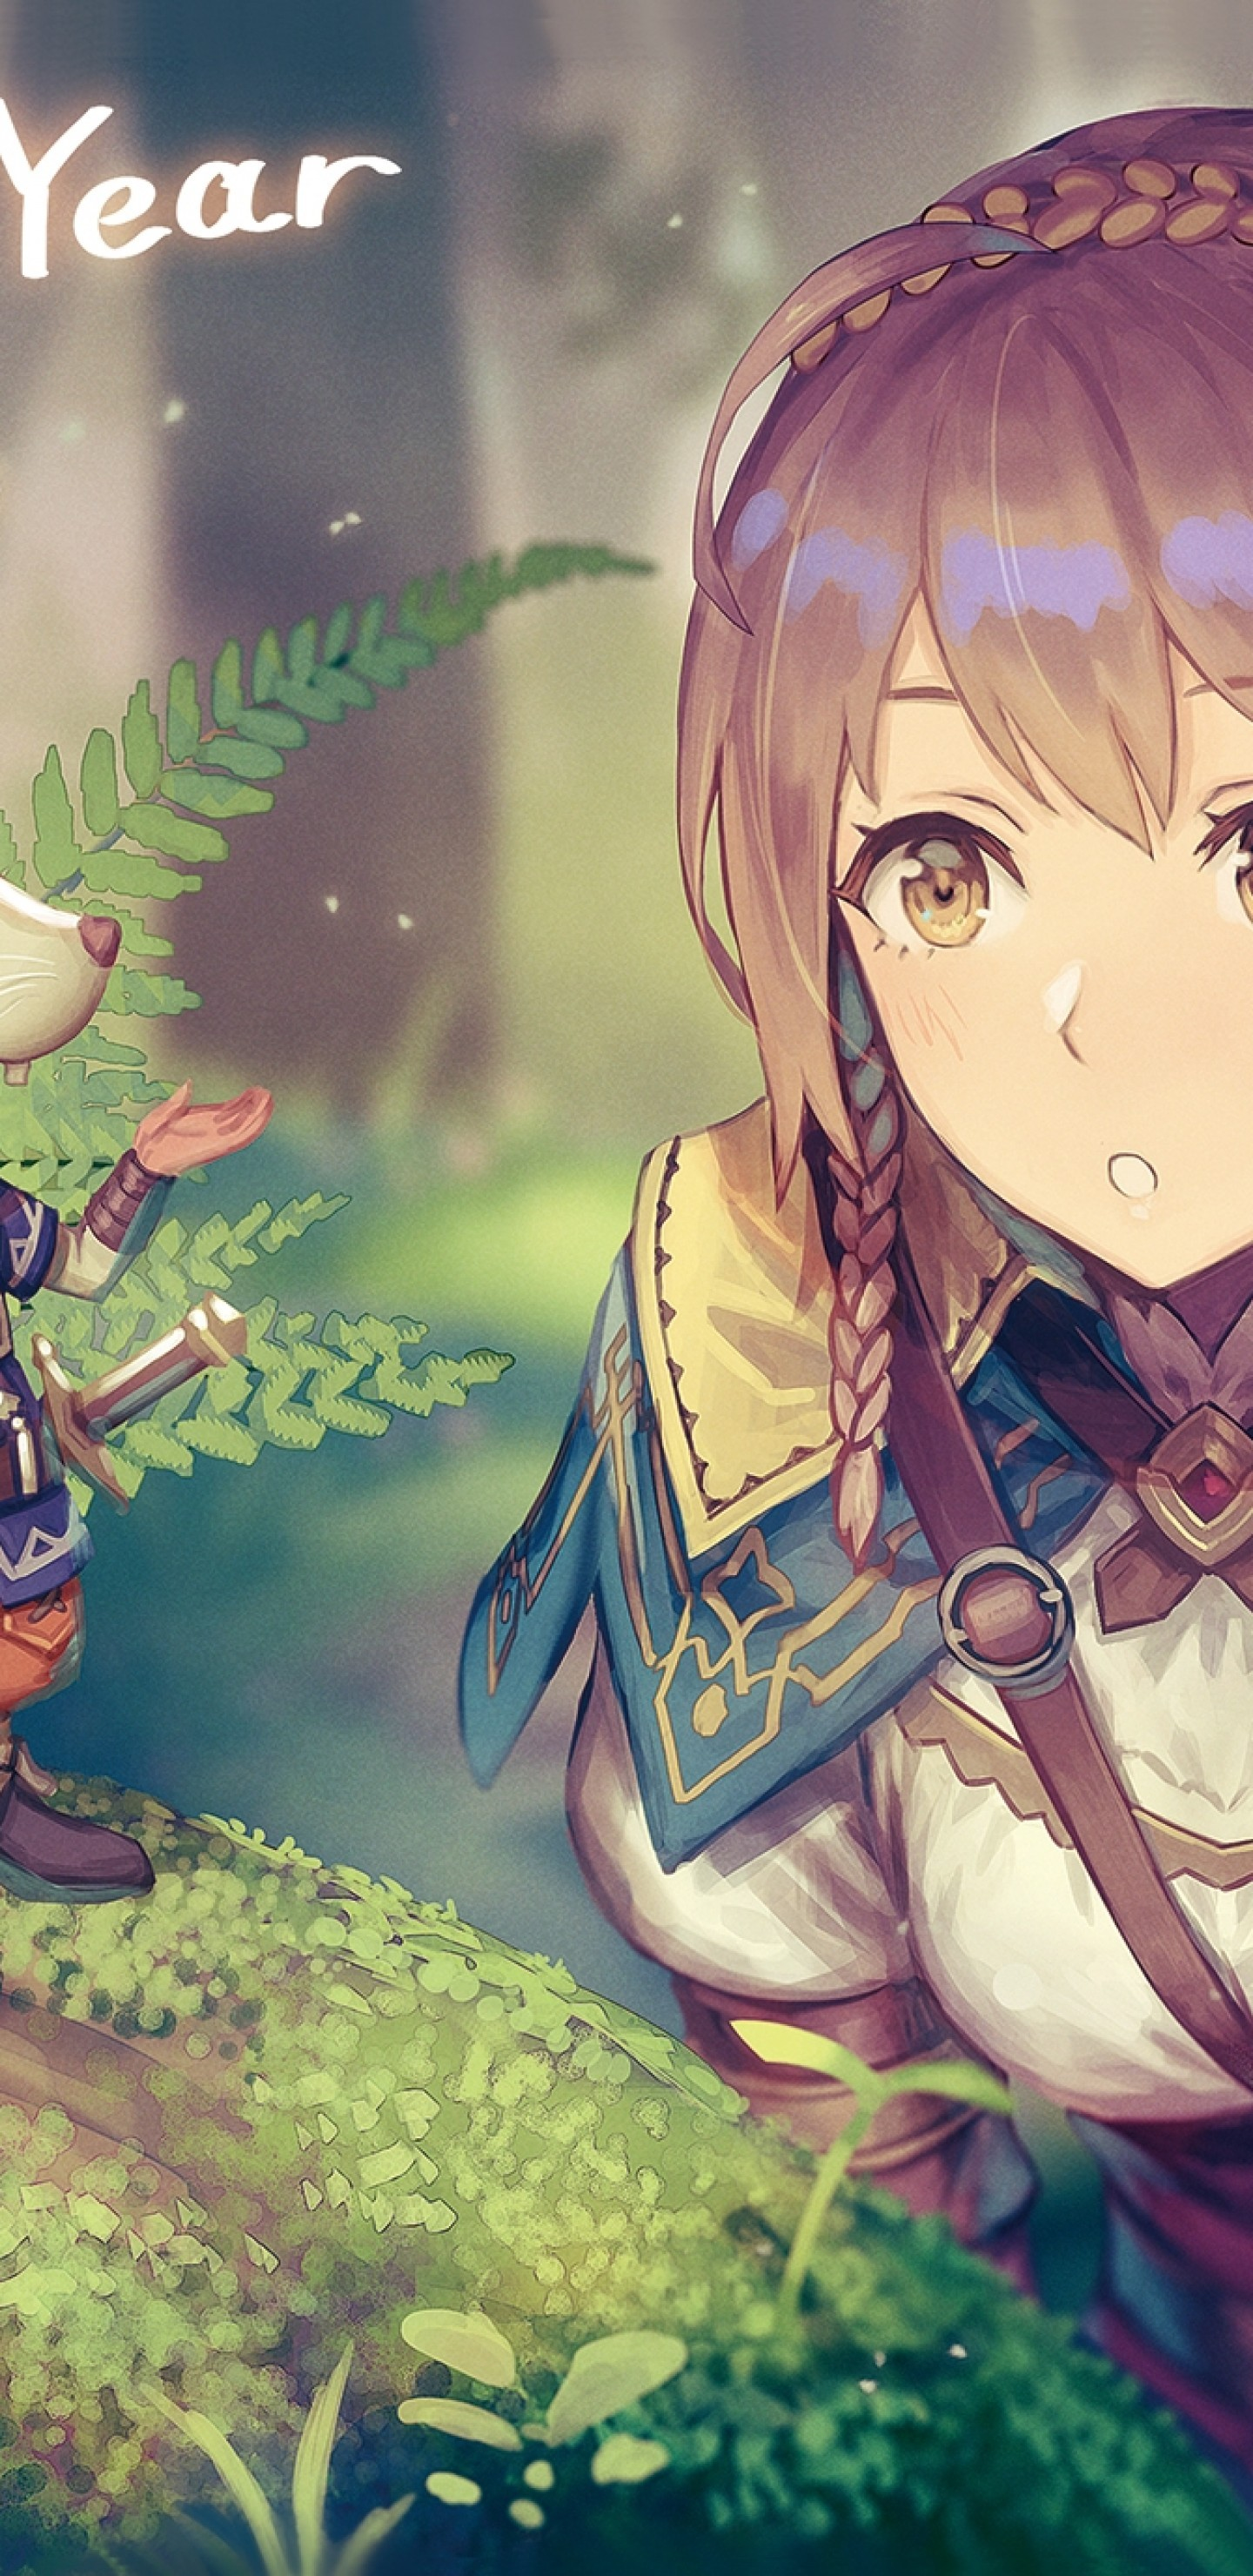 Download 1440x2960 Anime Girl Adventurer Forest Light Armor 1440x2960